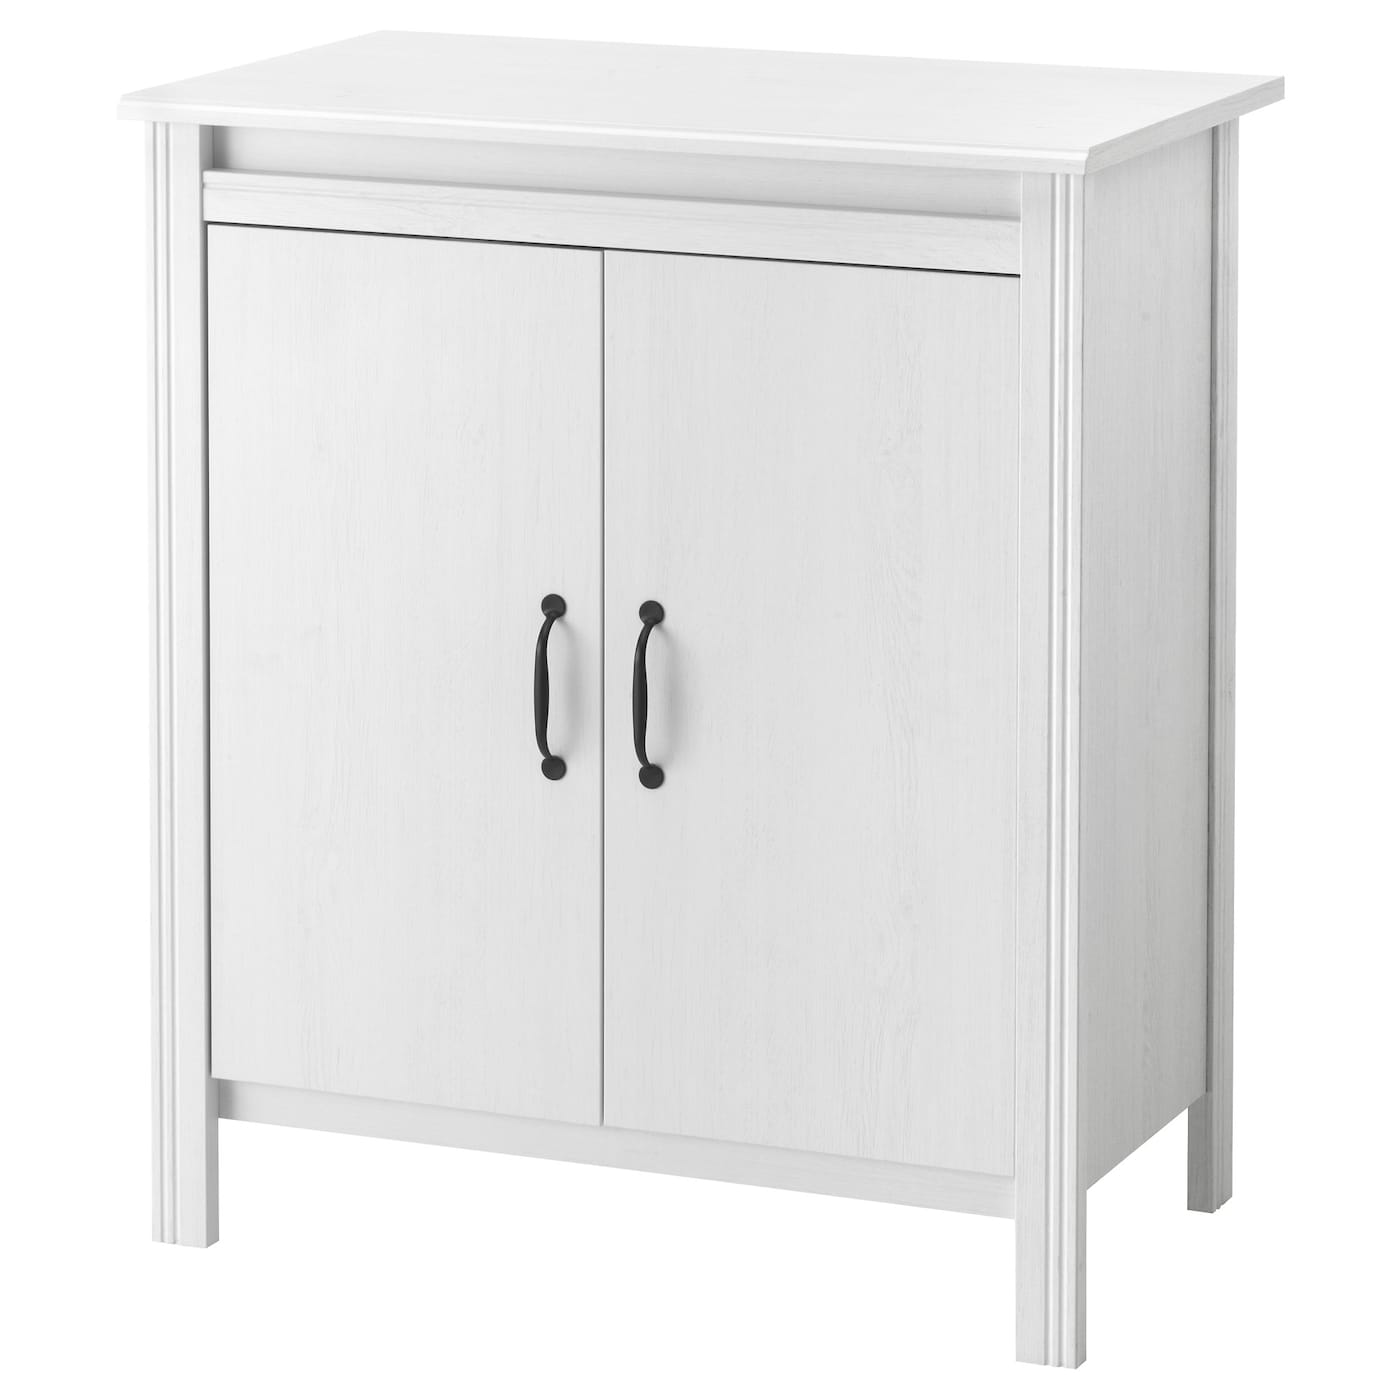 Brusali cabinet with doors white 80x93 cm ikea for Schrank 60x40